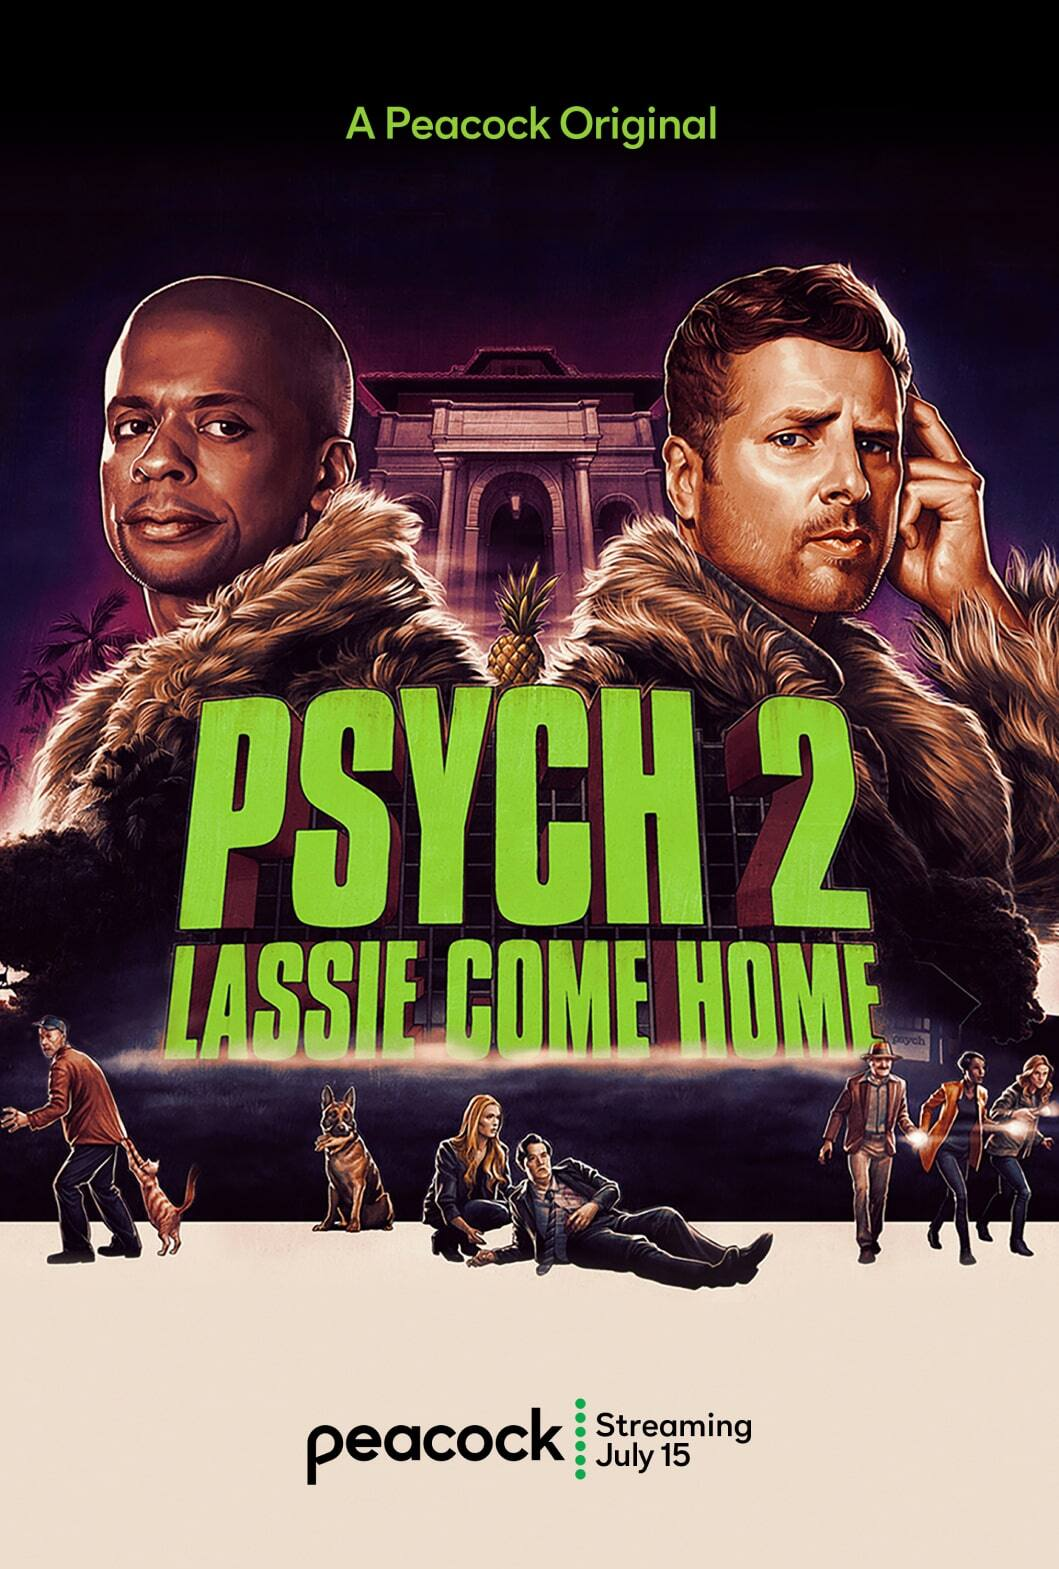 Psych 2 Key Art